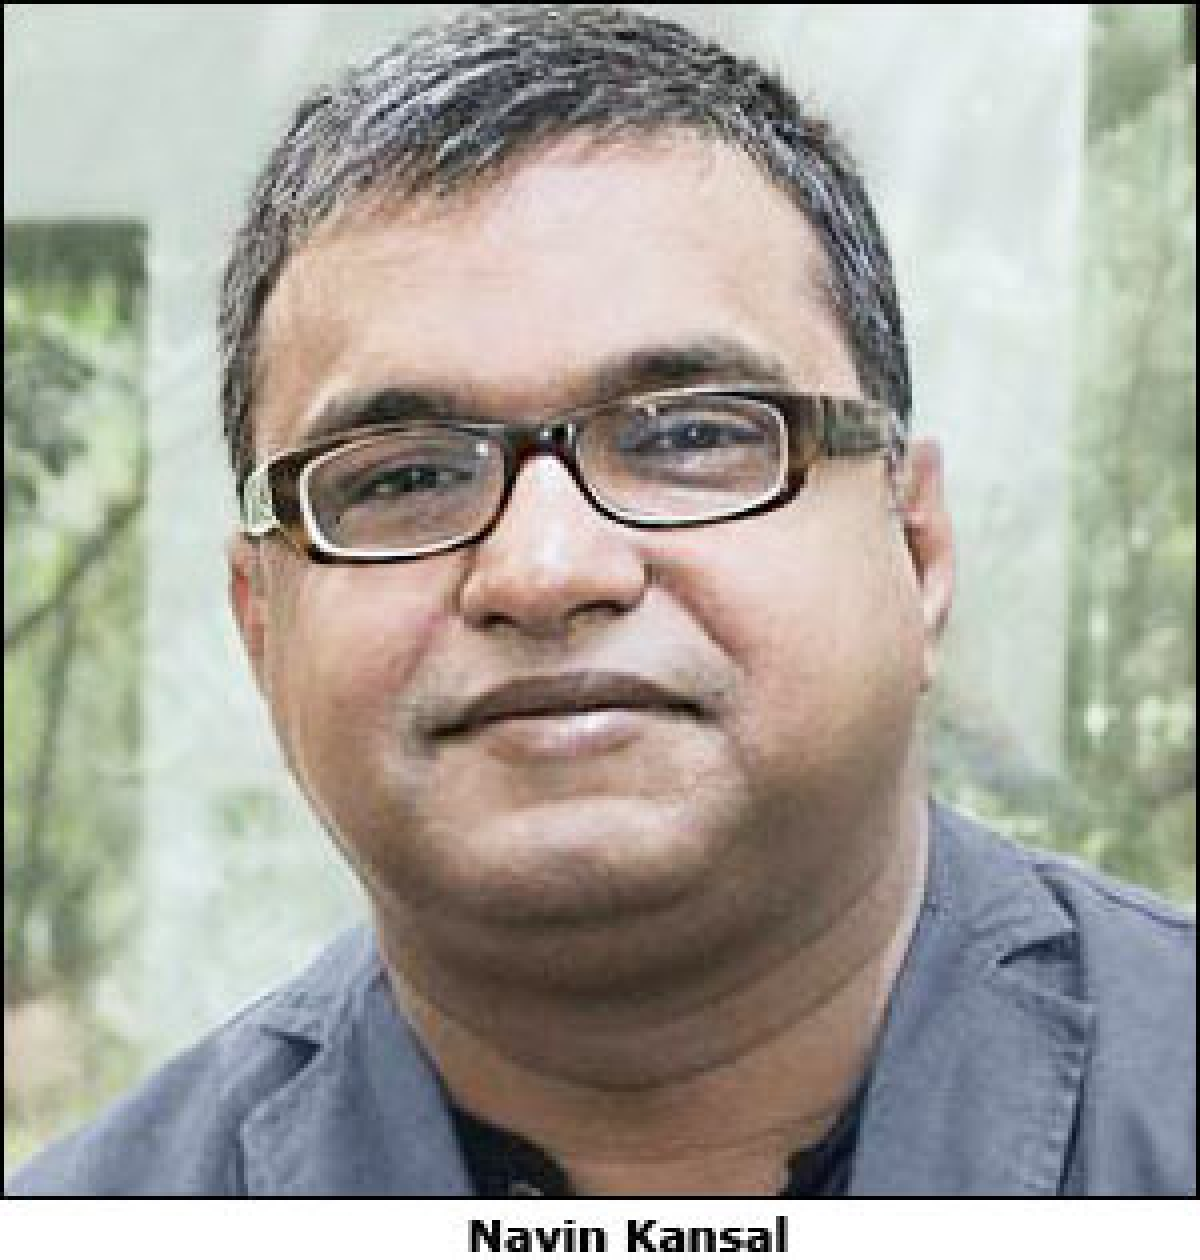 """""""We pitched this concept to Dove and they loved it"""": Siddharth Narula, President, Culture Machine"""